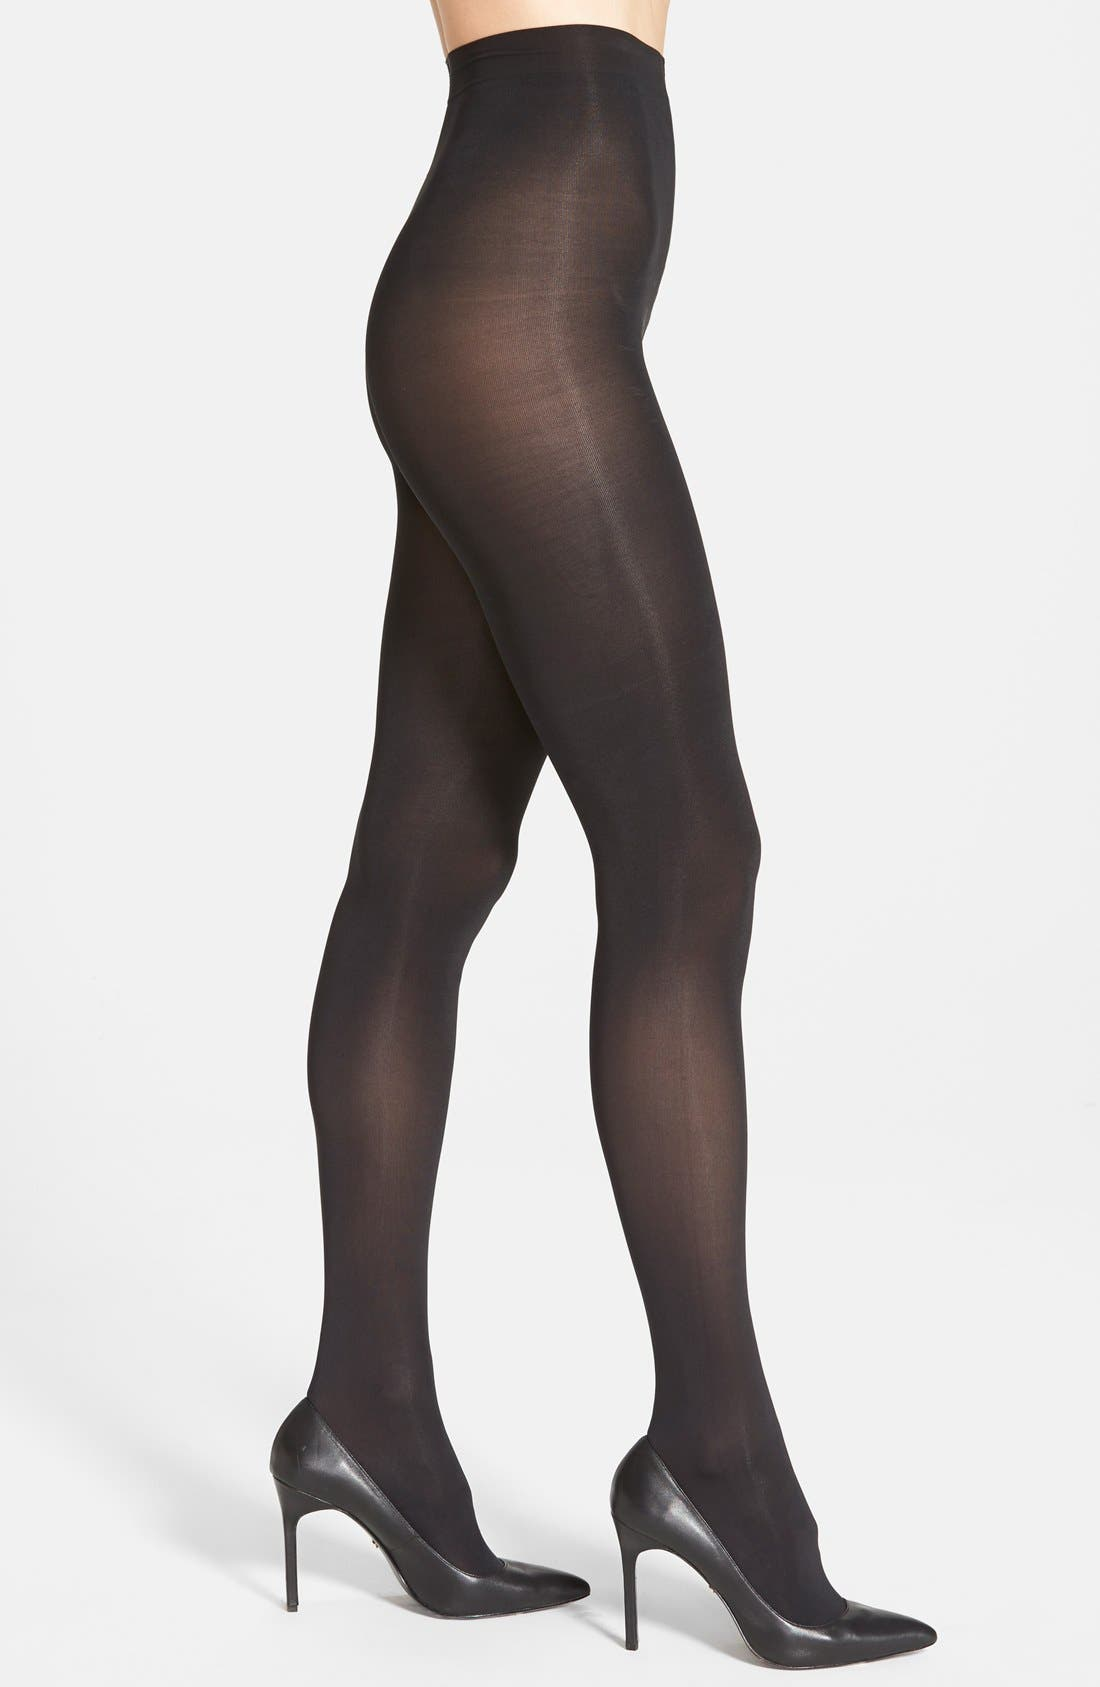 Donna Karan 'Evolution' Satin Jersey Tights,                         Main,                         color, 003